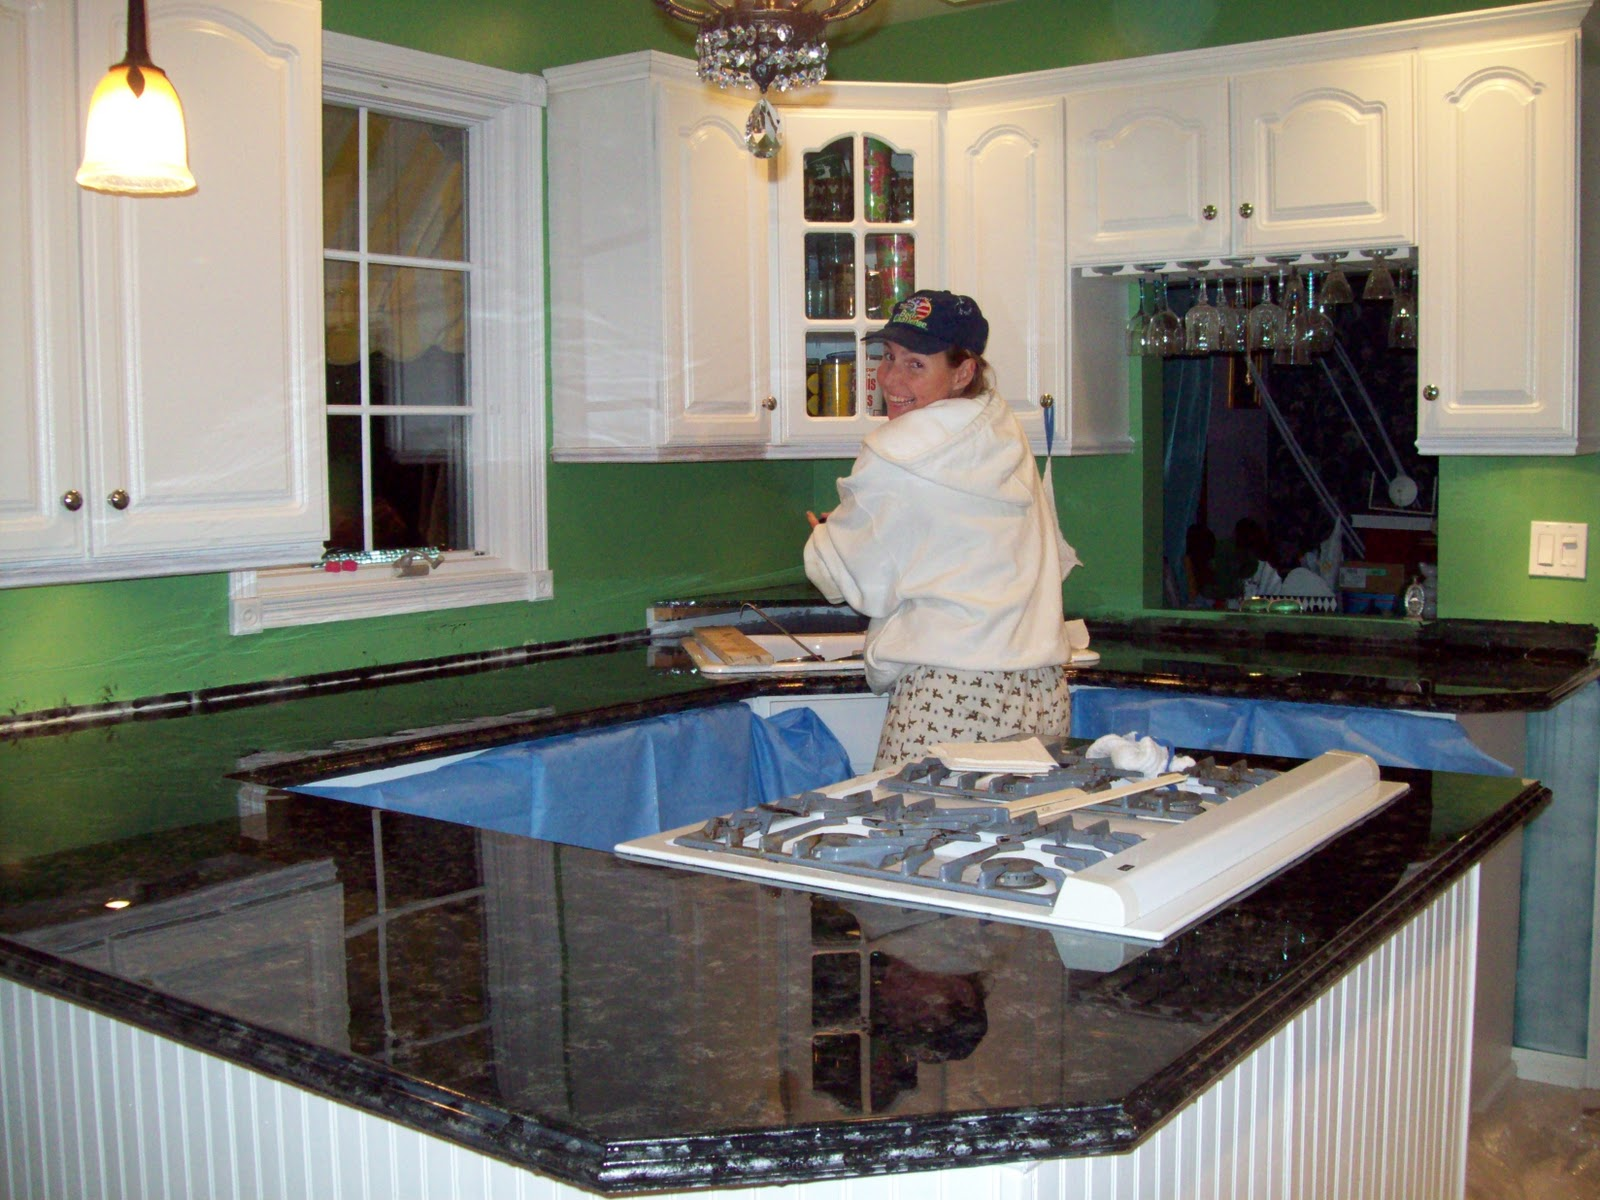 painted laminate countertops - photo #25